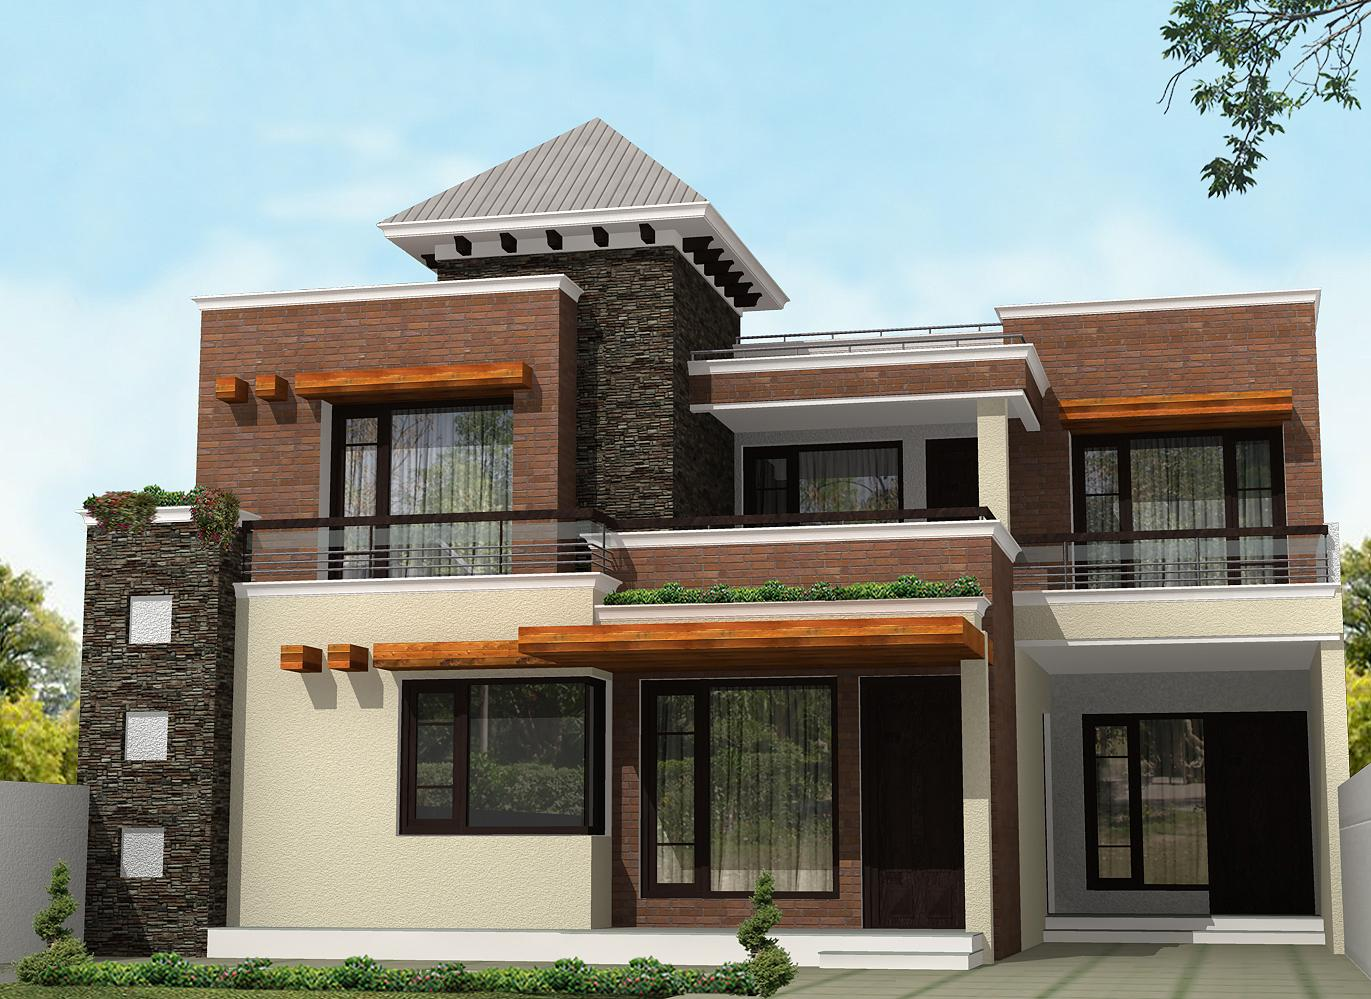 Exterior Elevation Design For 2 Story Residence Gharexpert